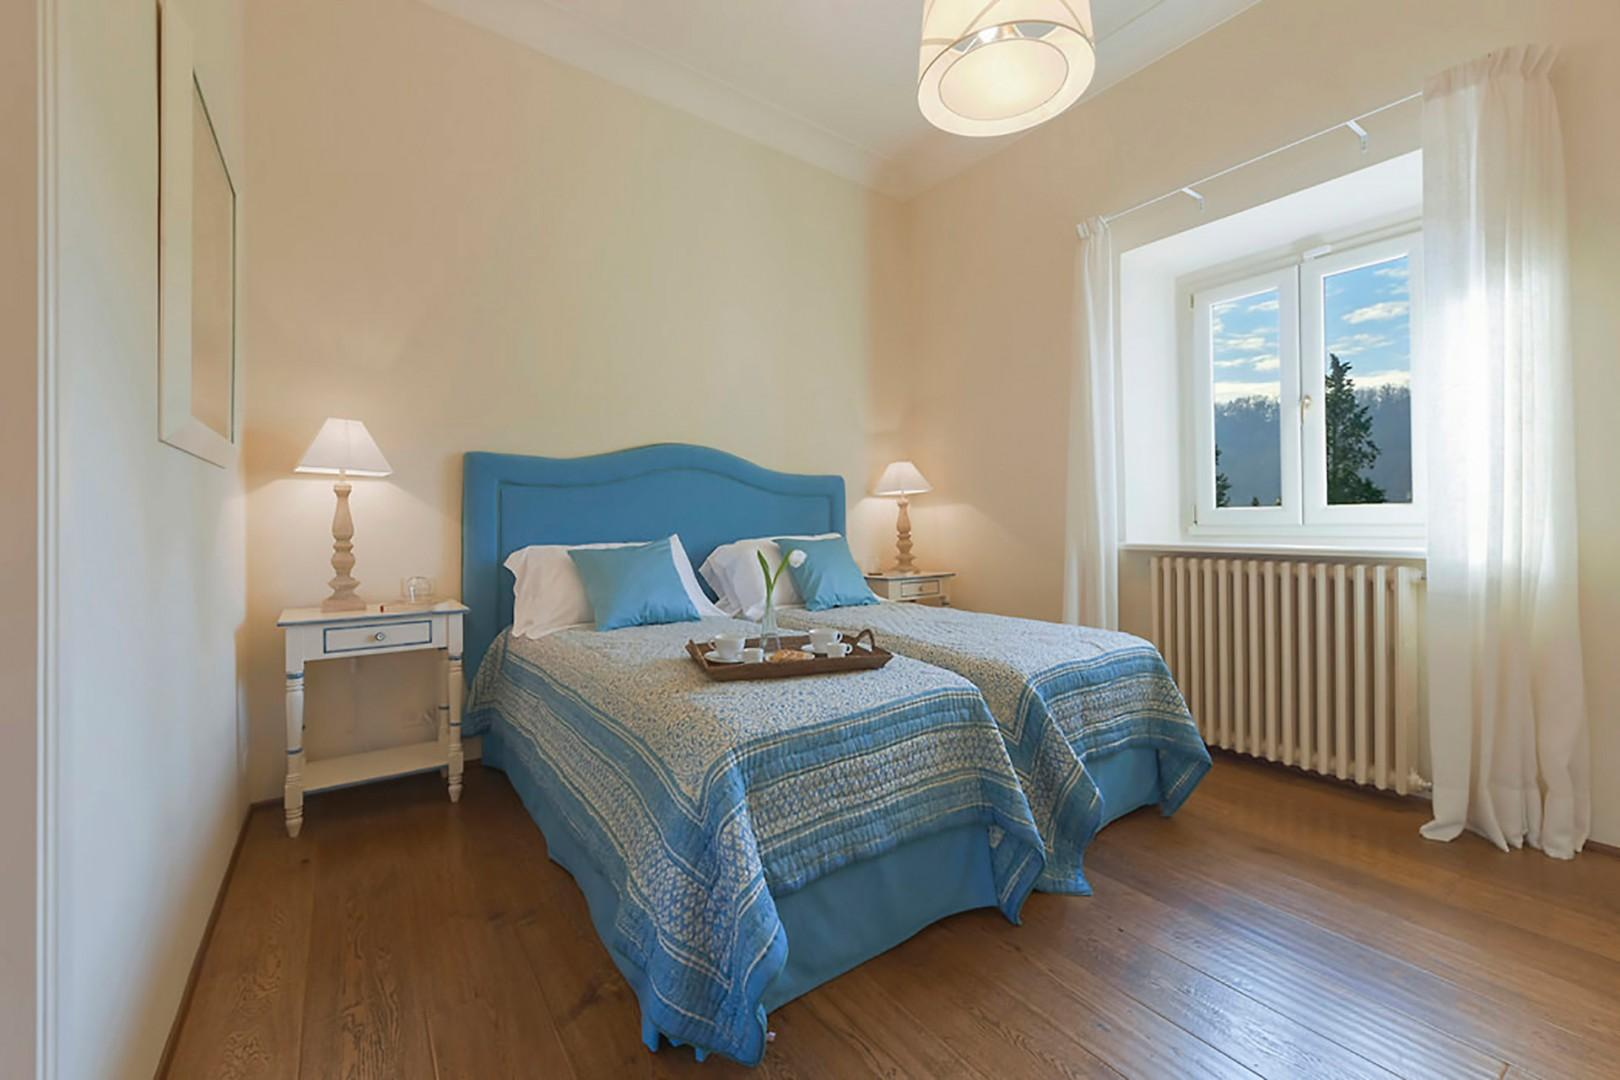 Bedroom 5, located on the 3rd floor with combinable beds and beautiful view.